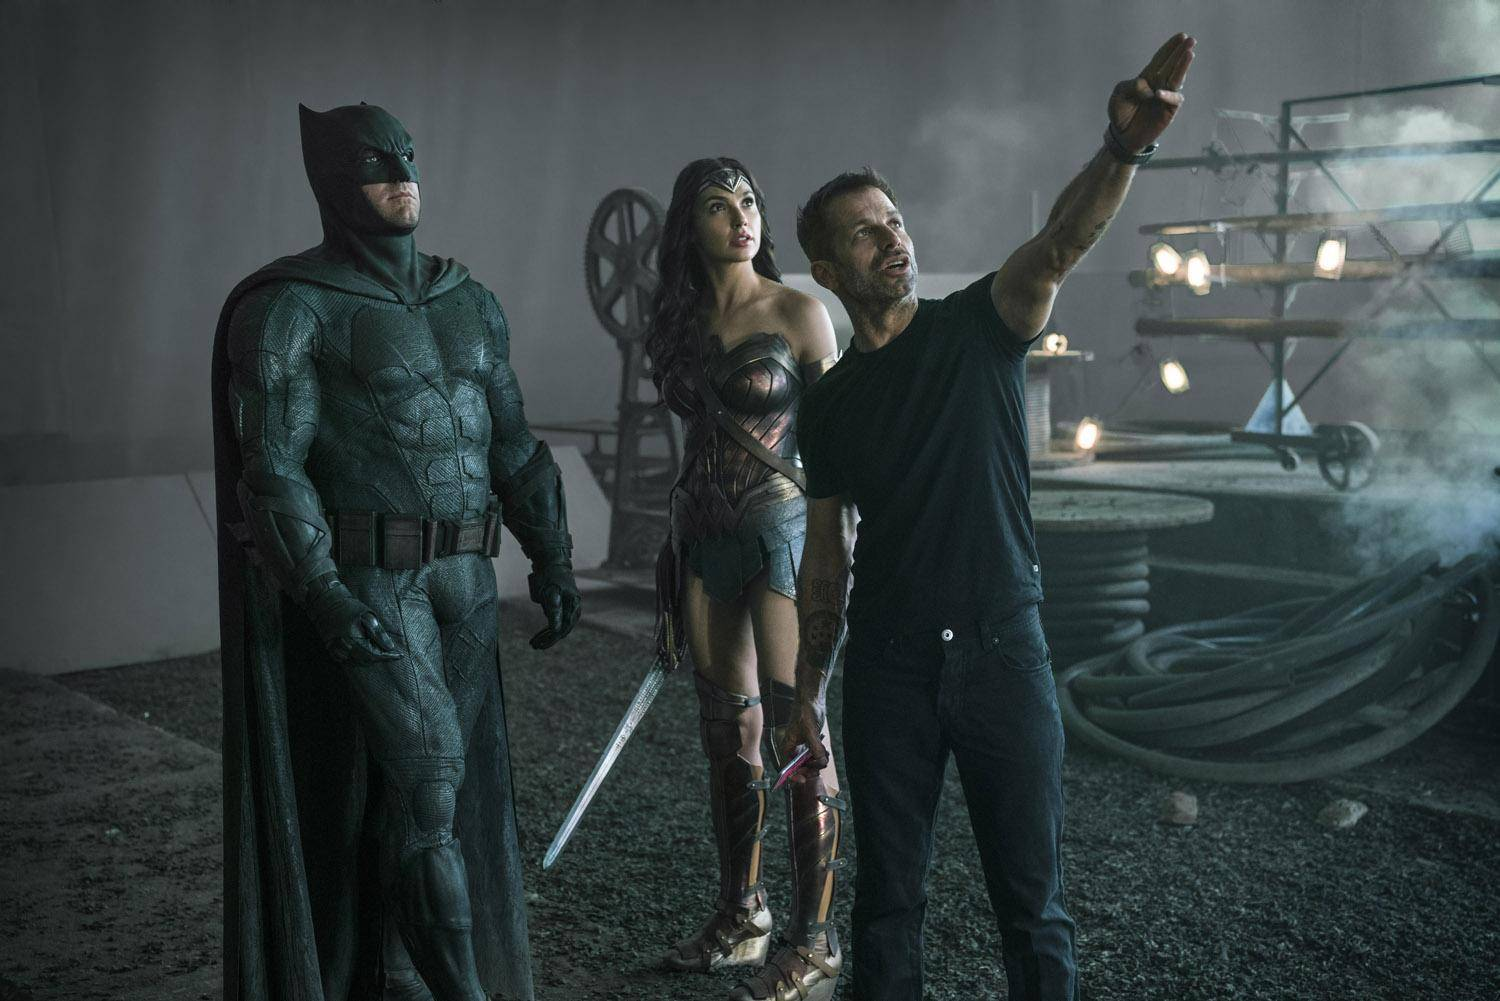 Zack Snyder, Snyder Cut, Justice League